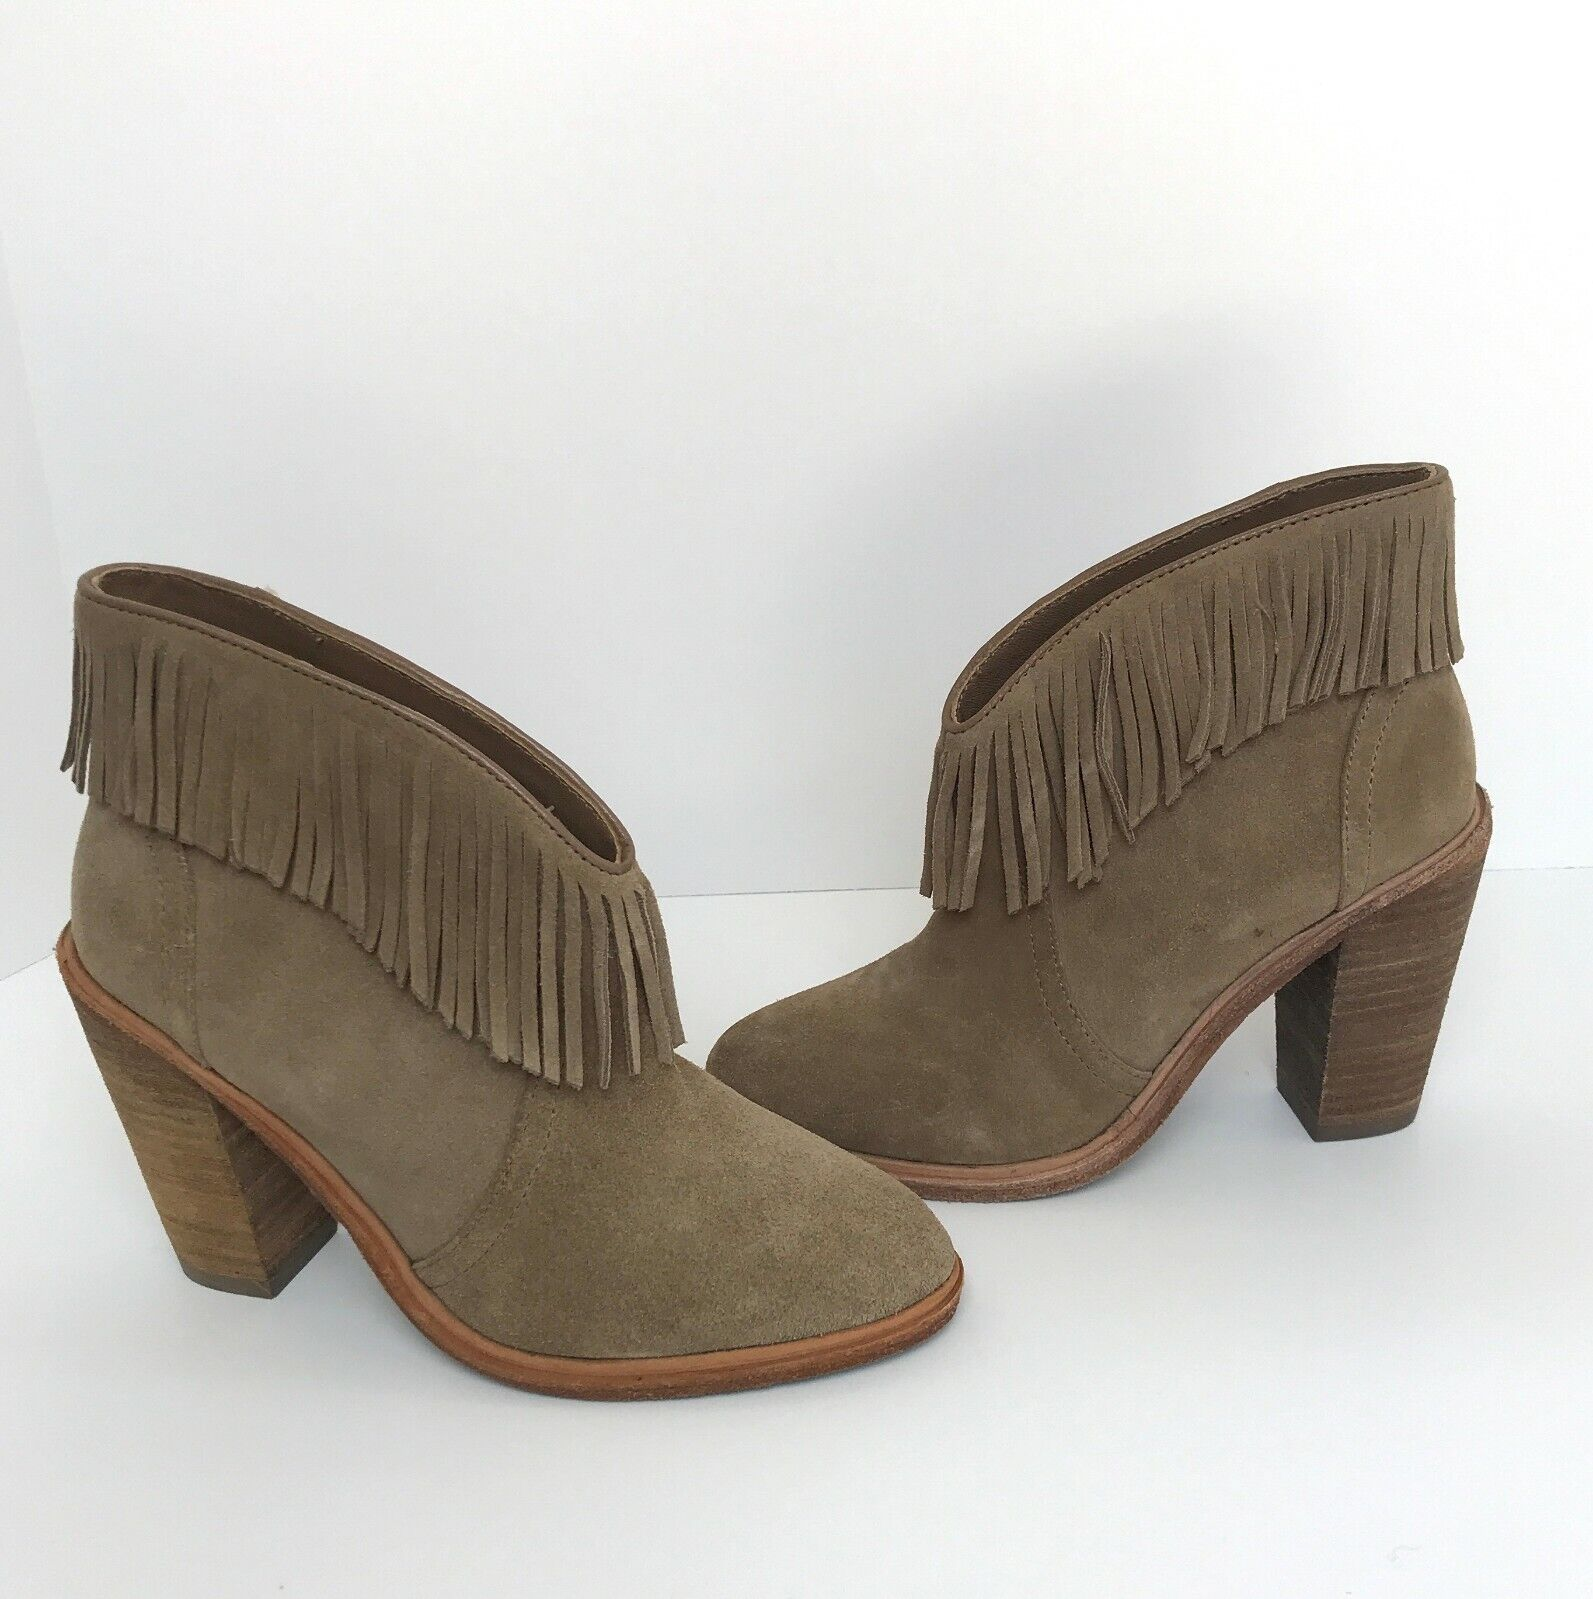 Joie Loren Mousse Tan Suede Suede Suede Fringe Booties Ankle Boots 35 5 New be99b0